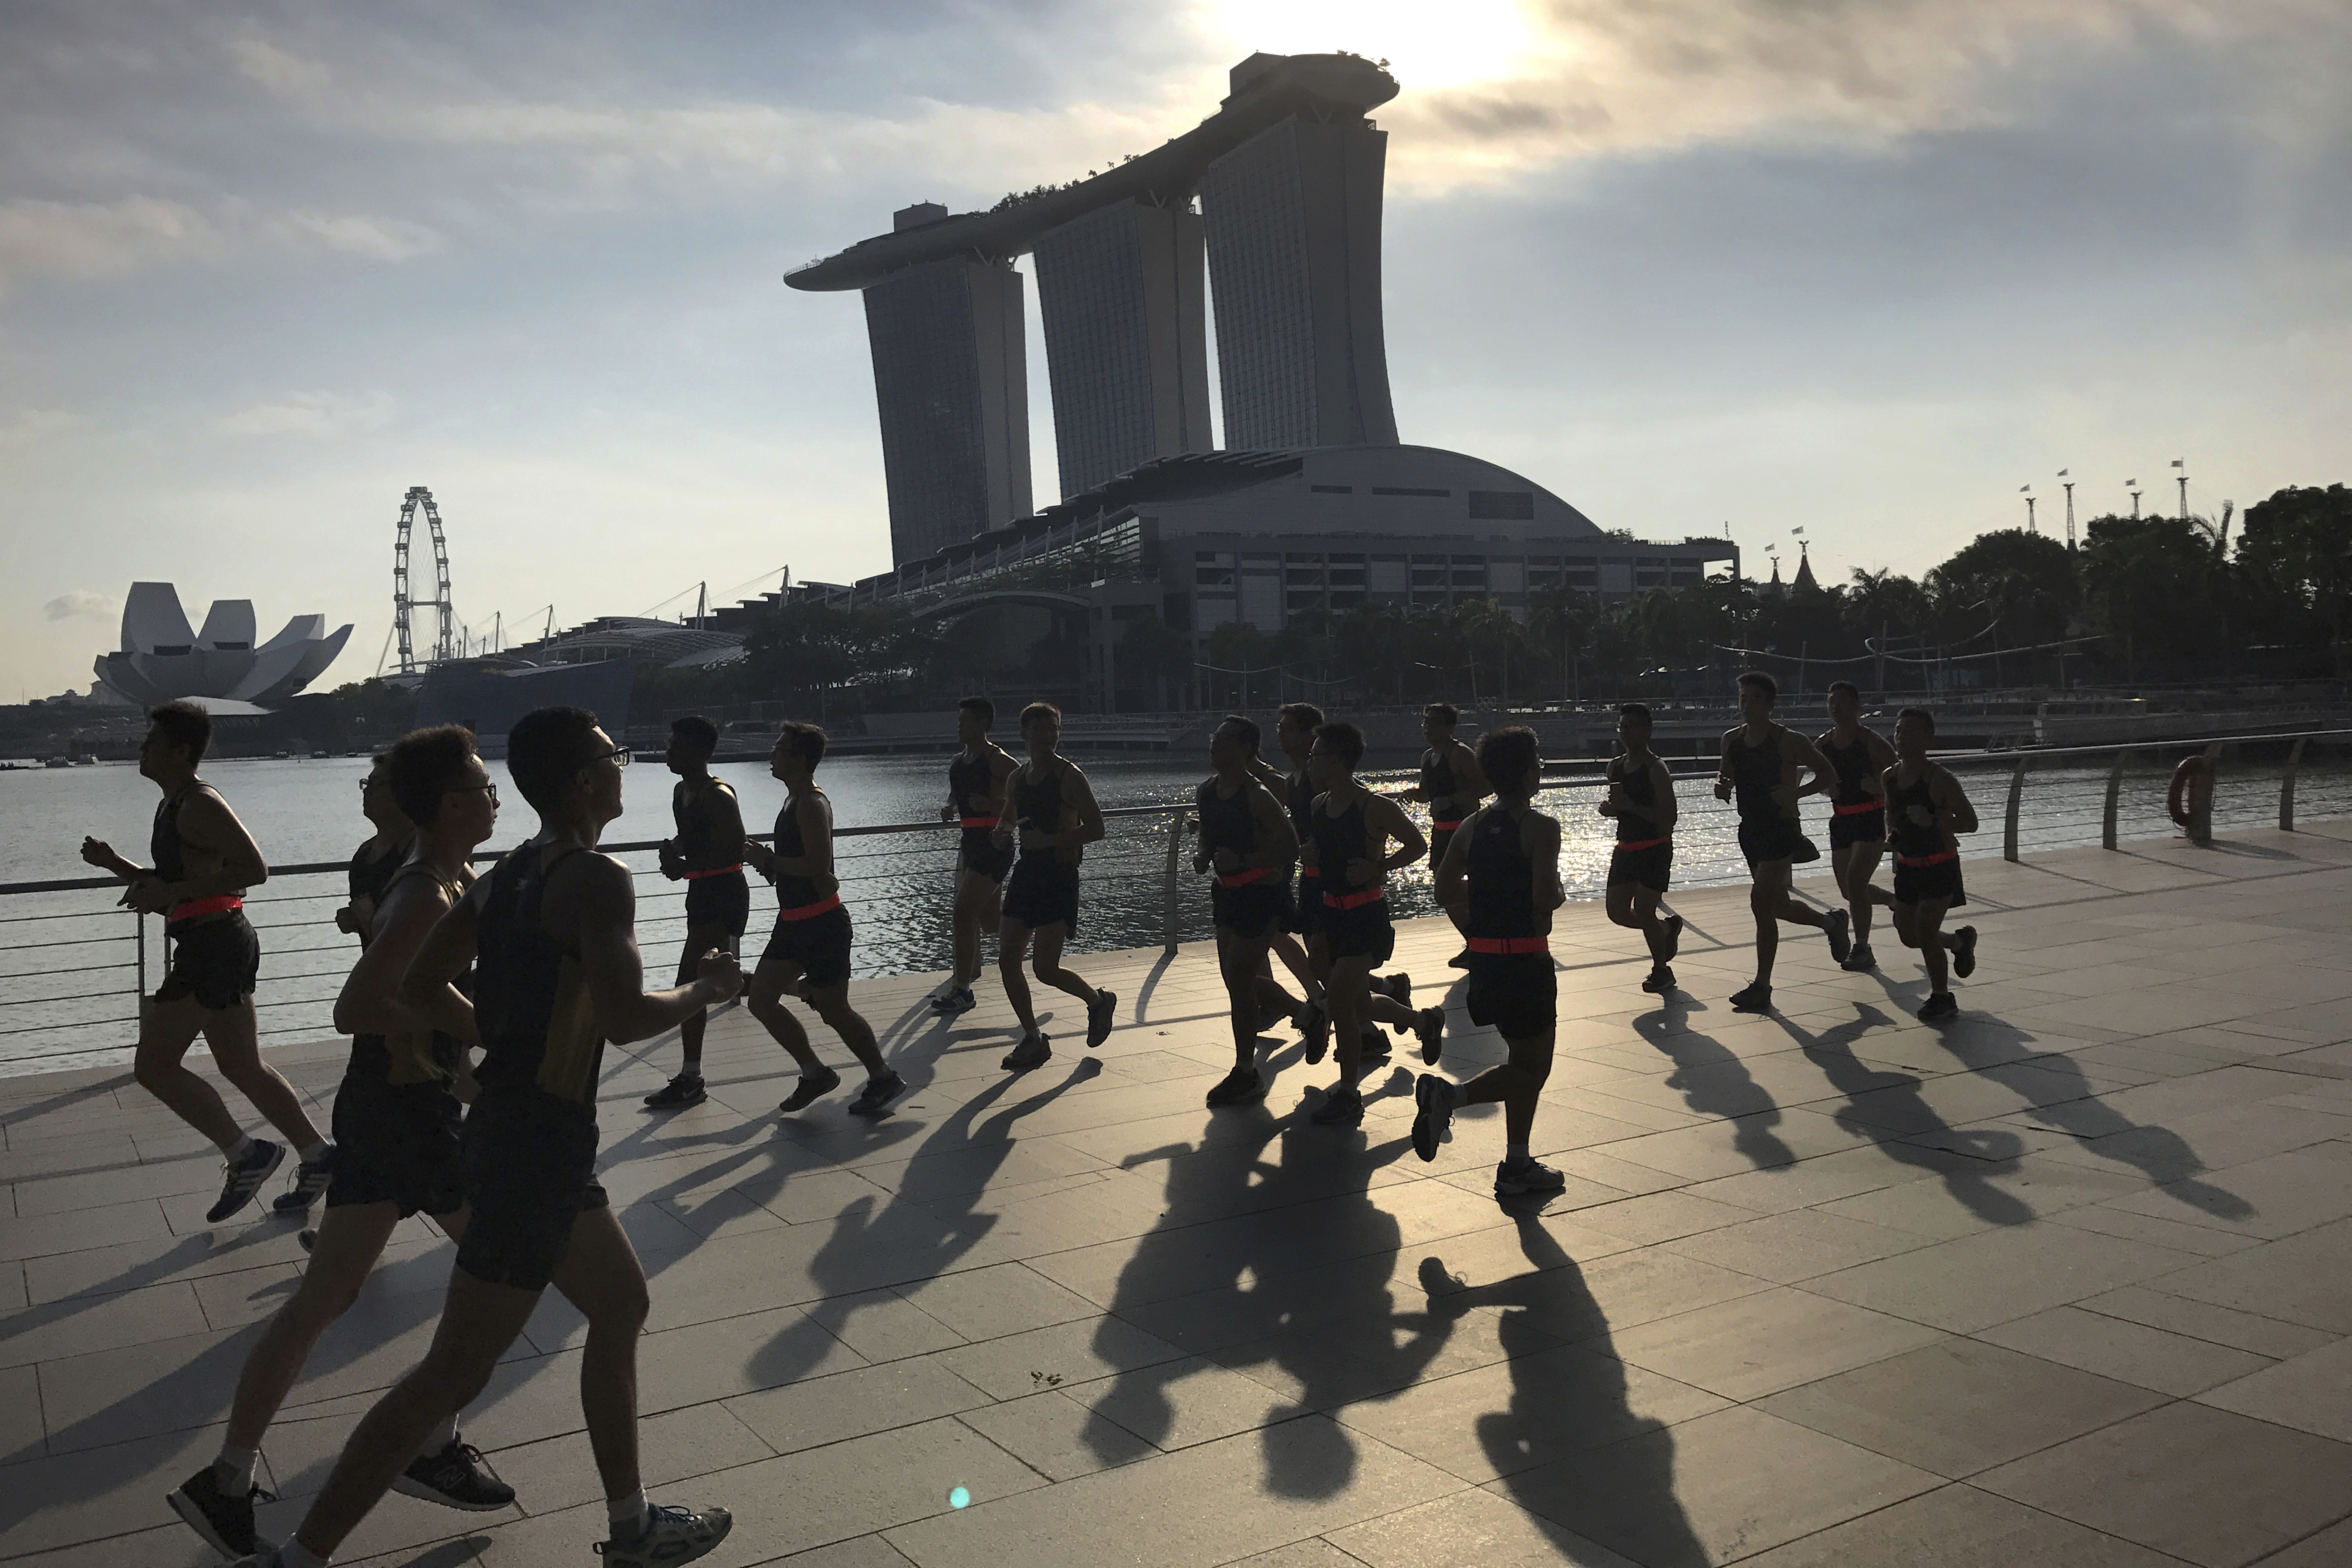 Singapore is the world's best city to live in, according to HSBC's